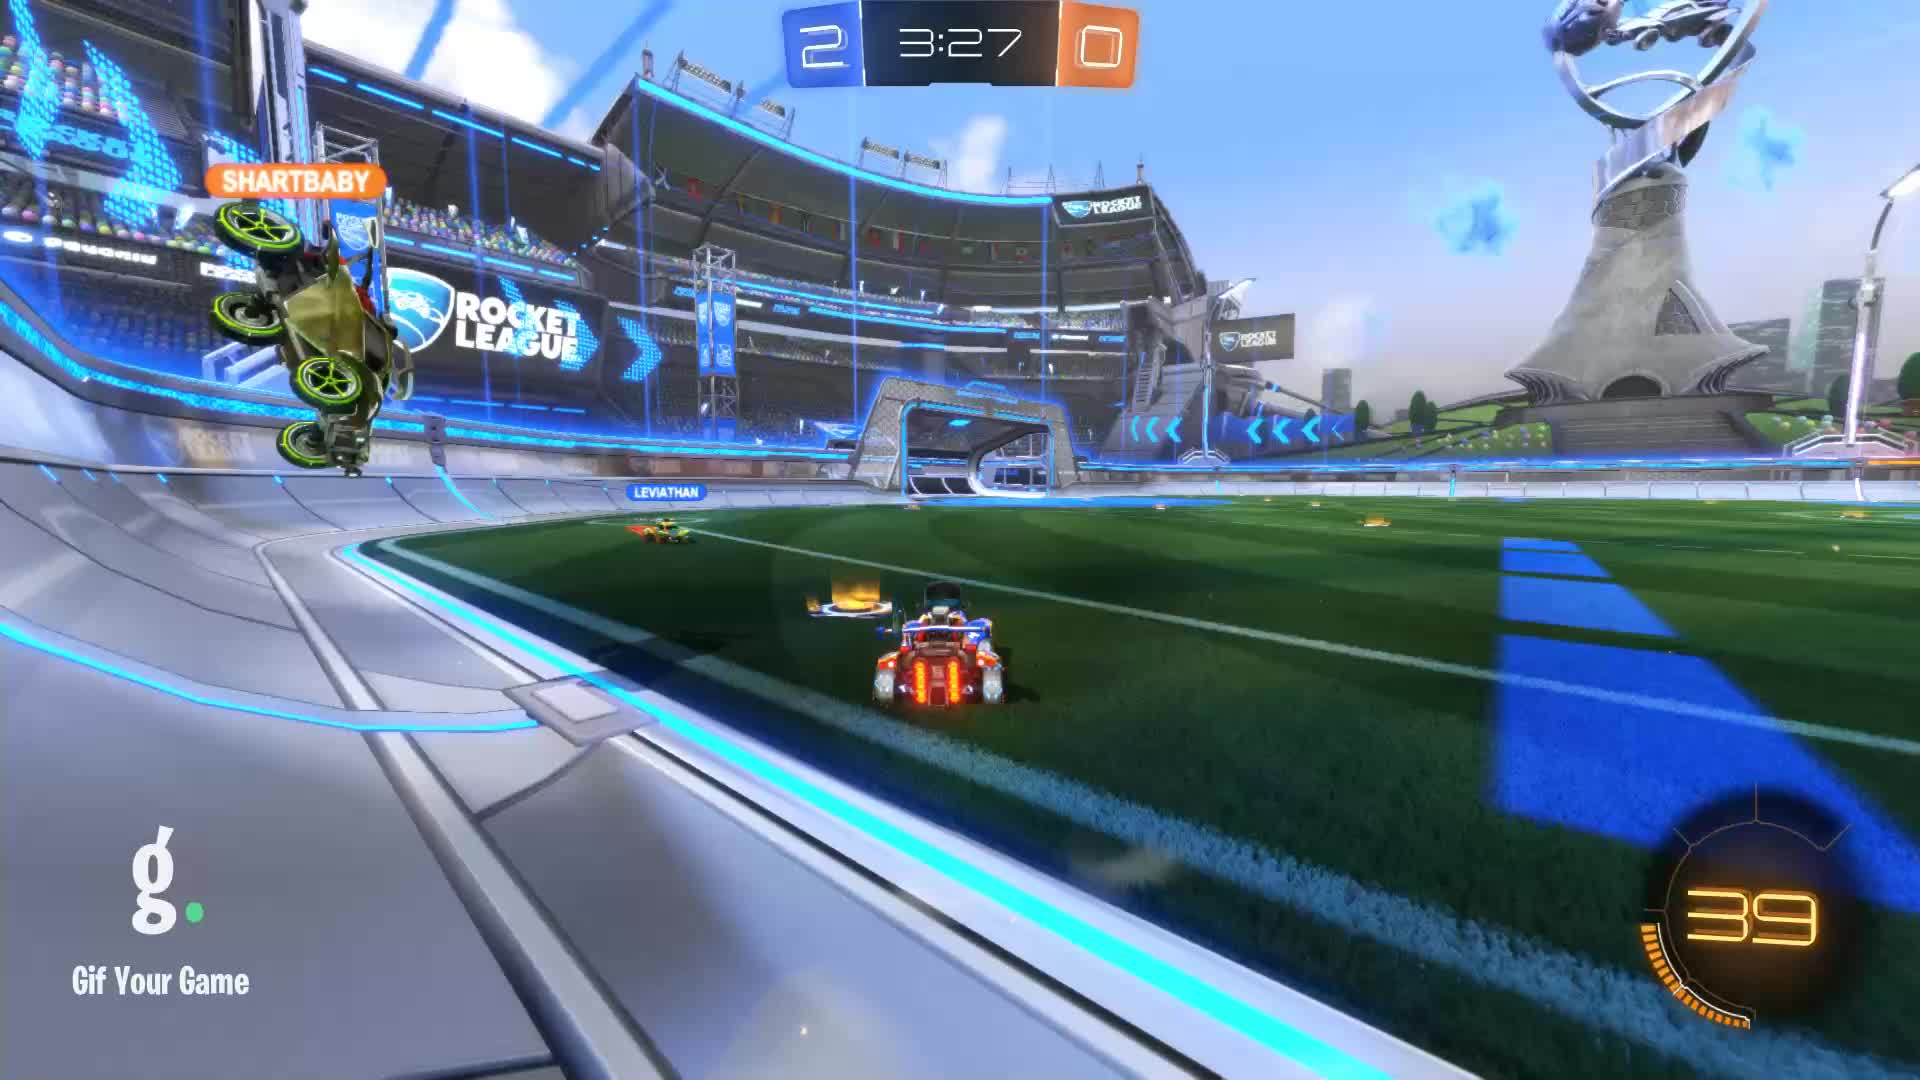 Duck Dodgers, Gif Your Game, GifYourGame, Goal, Rocket League, RocketLeague, Goal 3: Duck Dodgers GIFs